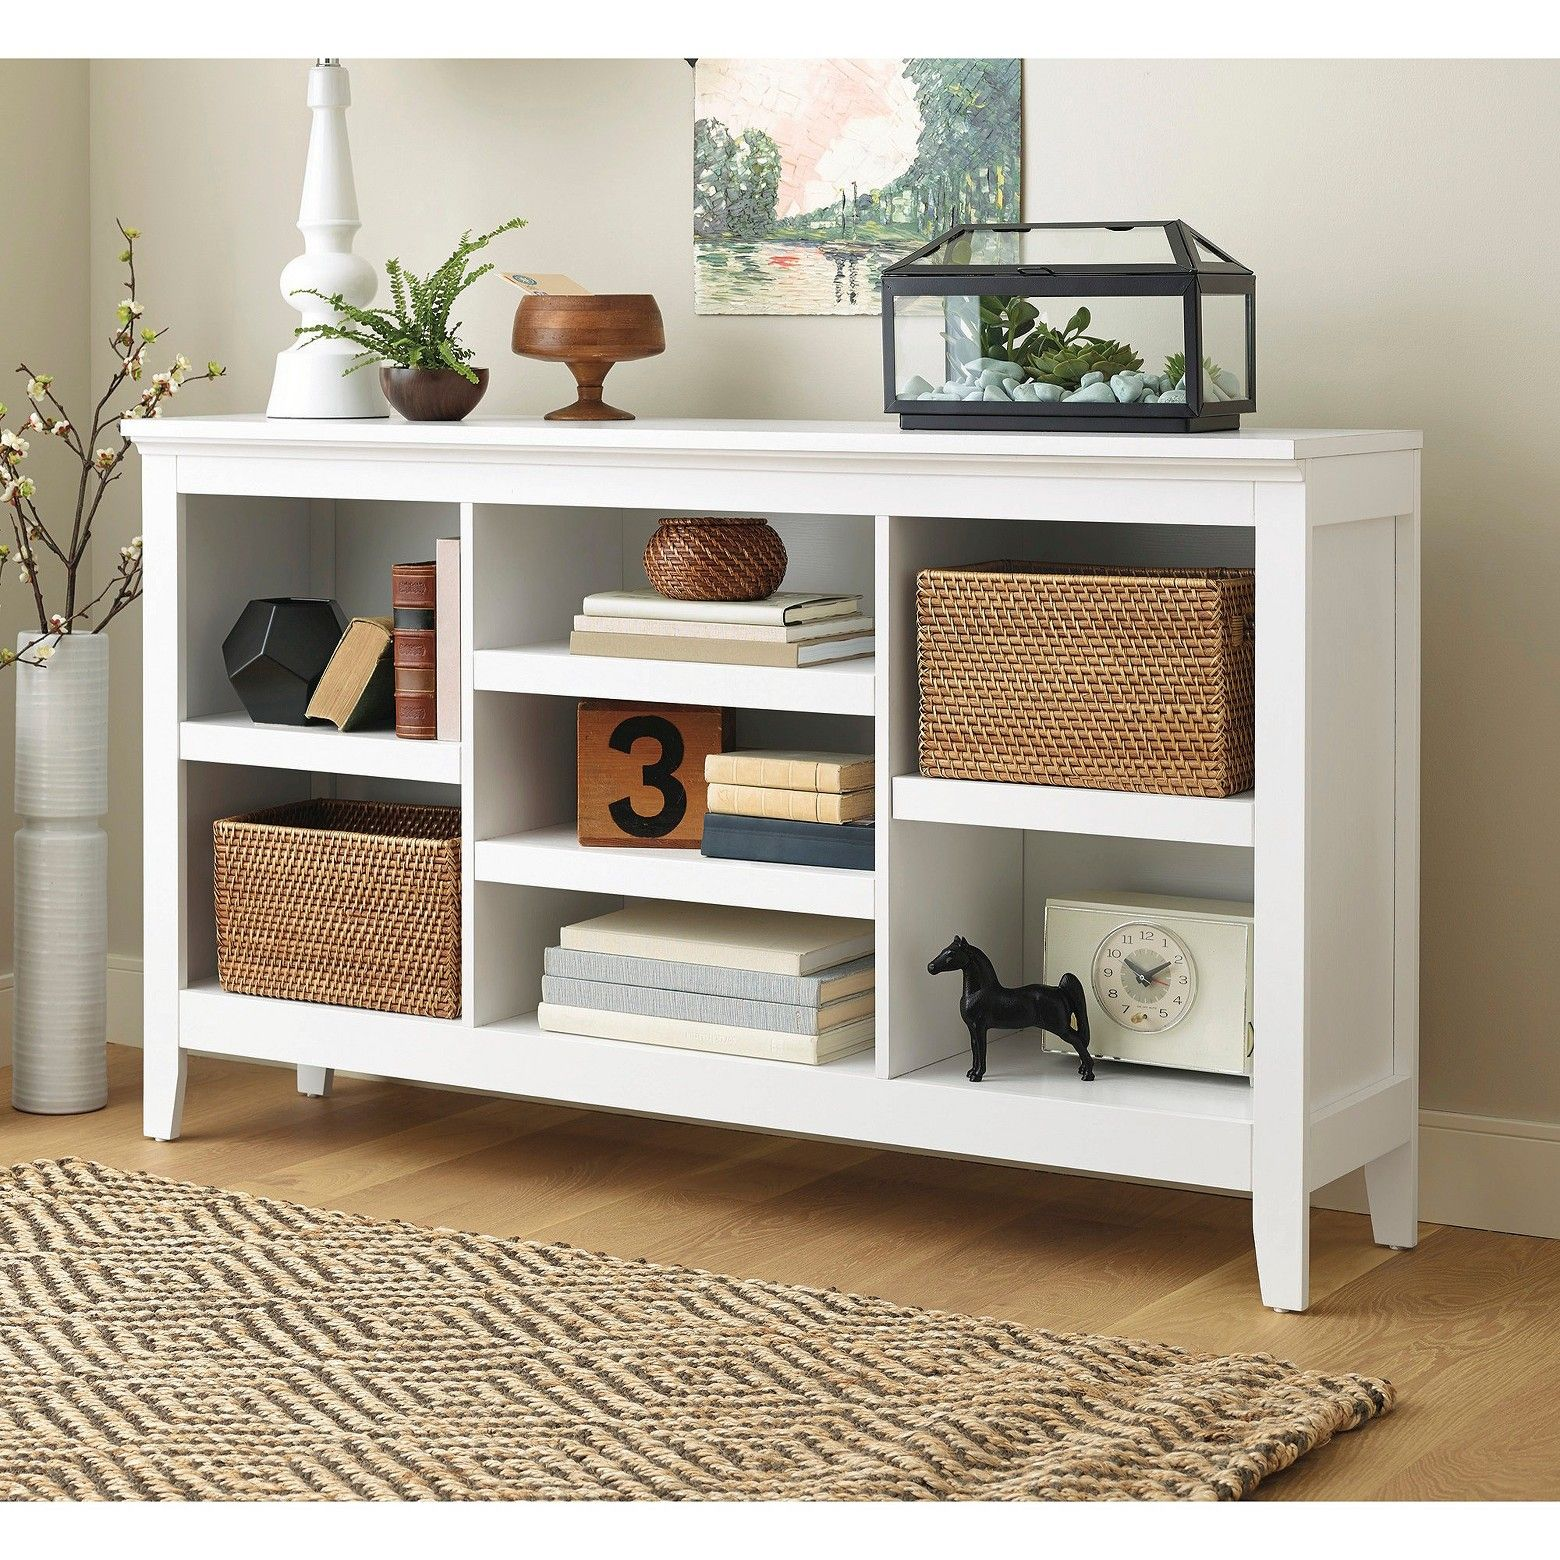 p The Threshold Carson Horizontal Bookcase in white does double duty